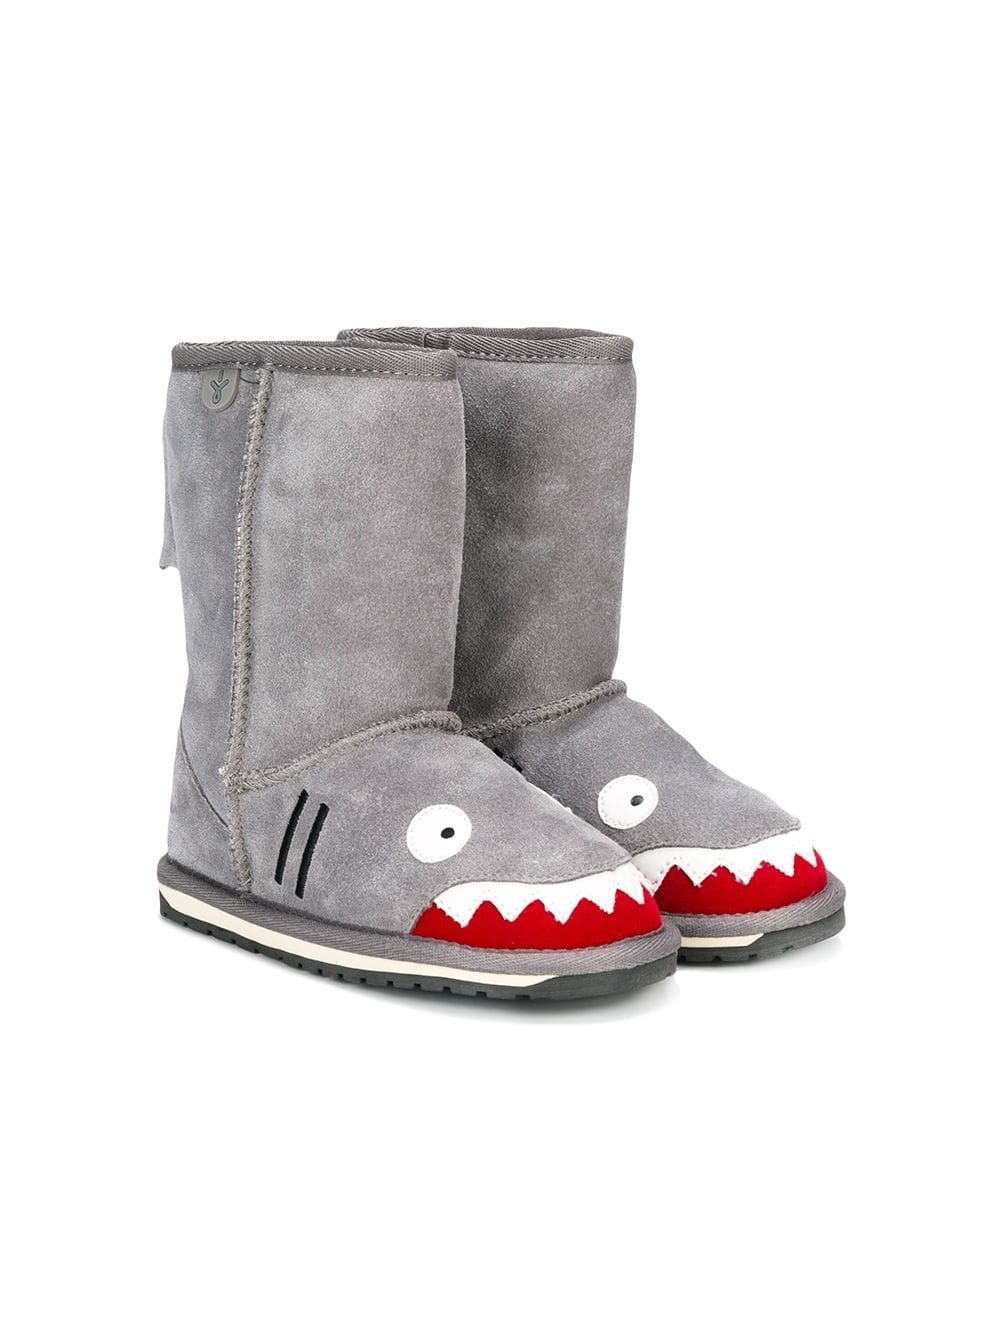 f01aec24c Emu Kids shark shearling boots - Grey in 2019   Products   Shearling ...